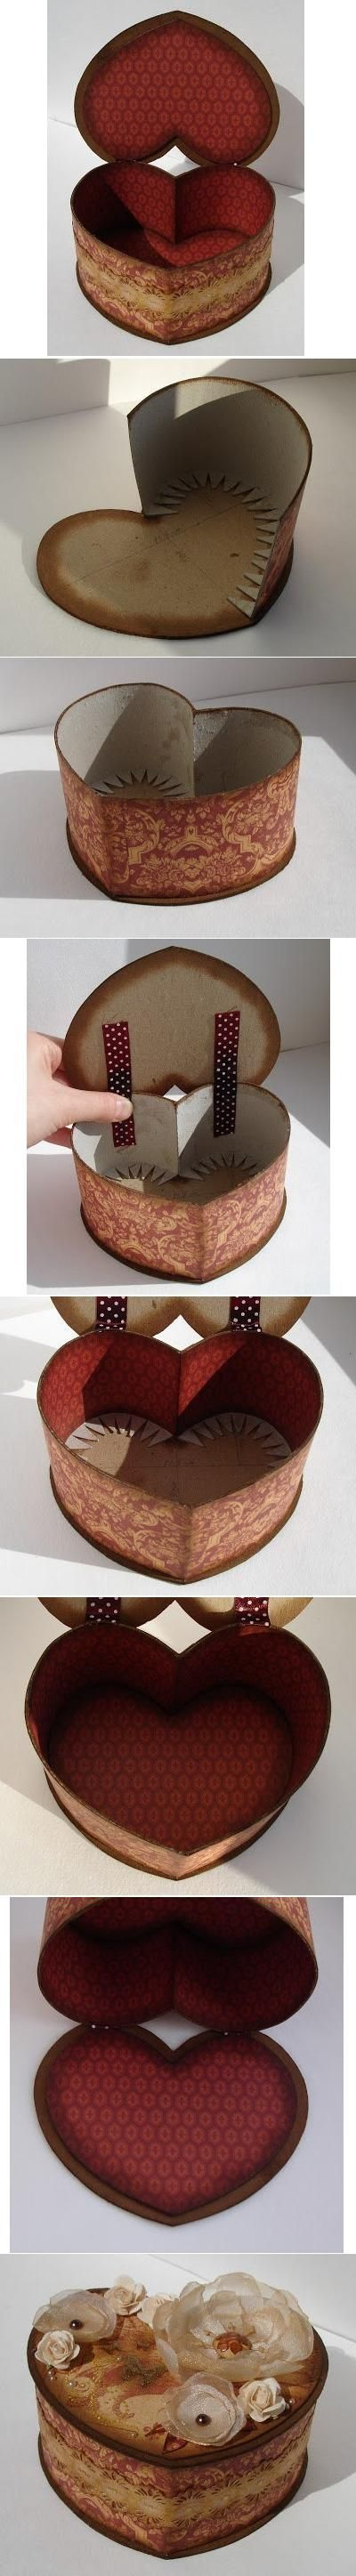 DIY-Heart Shaped Box